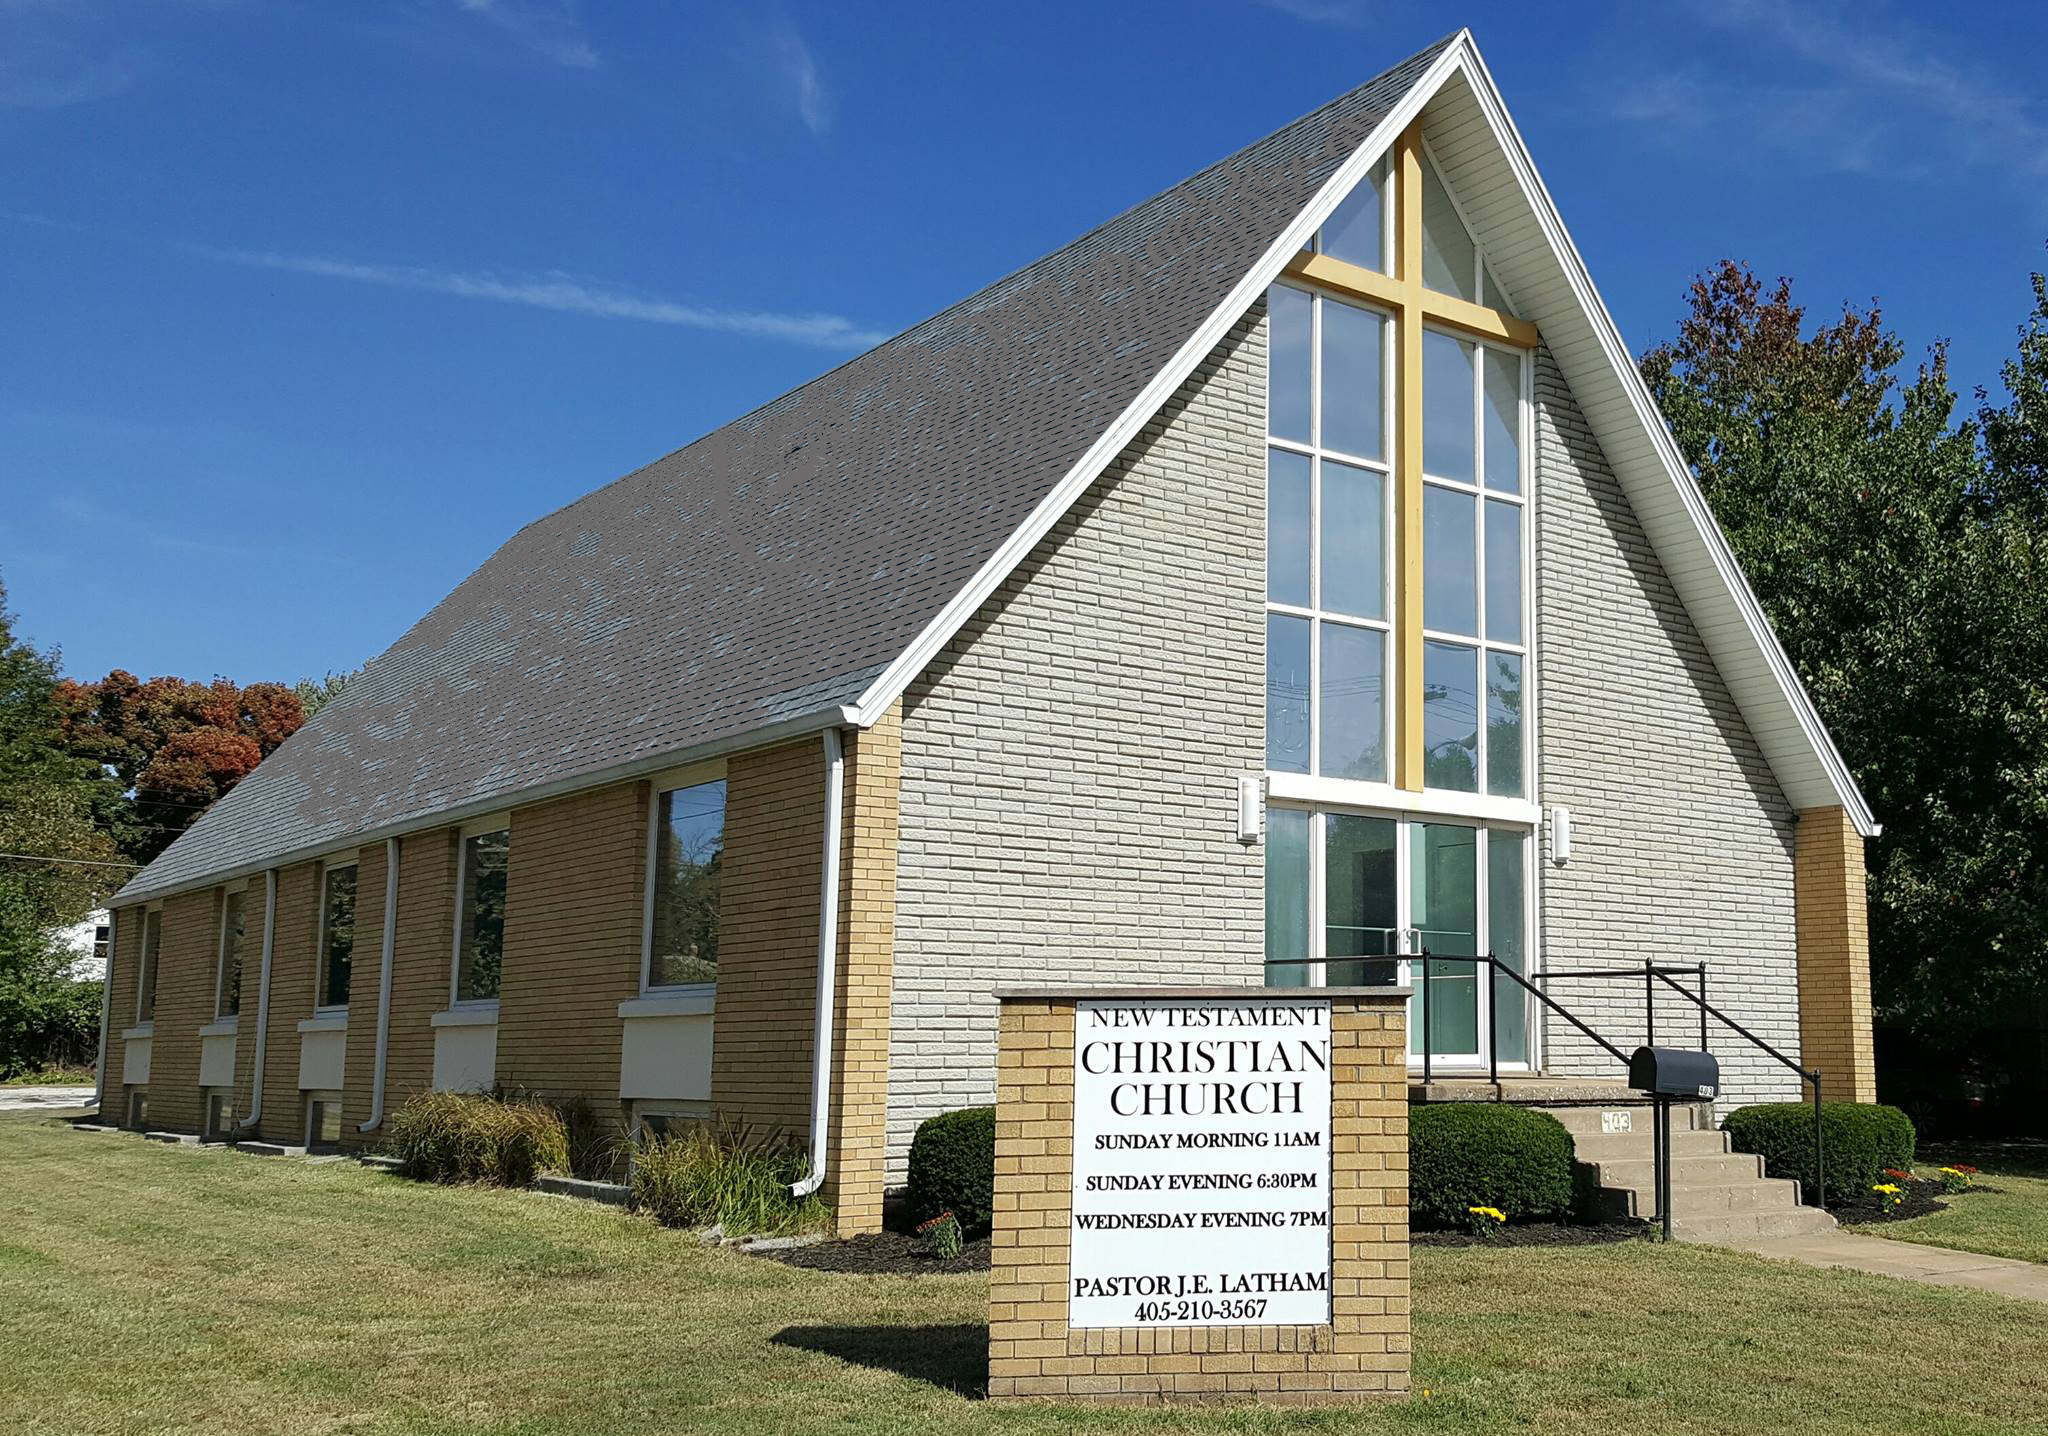 NTCC of Springfield MO exterior church building perspective view